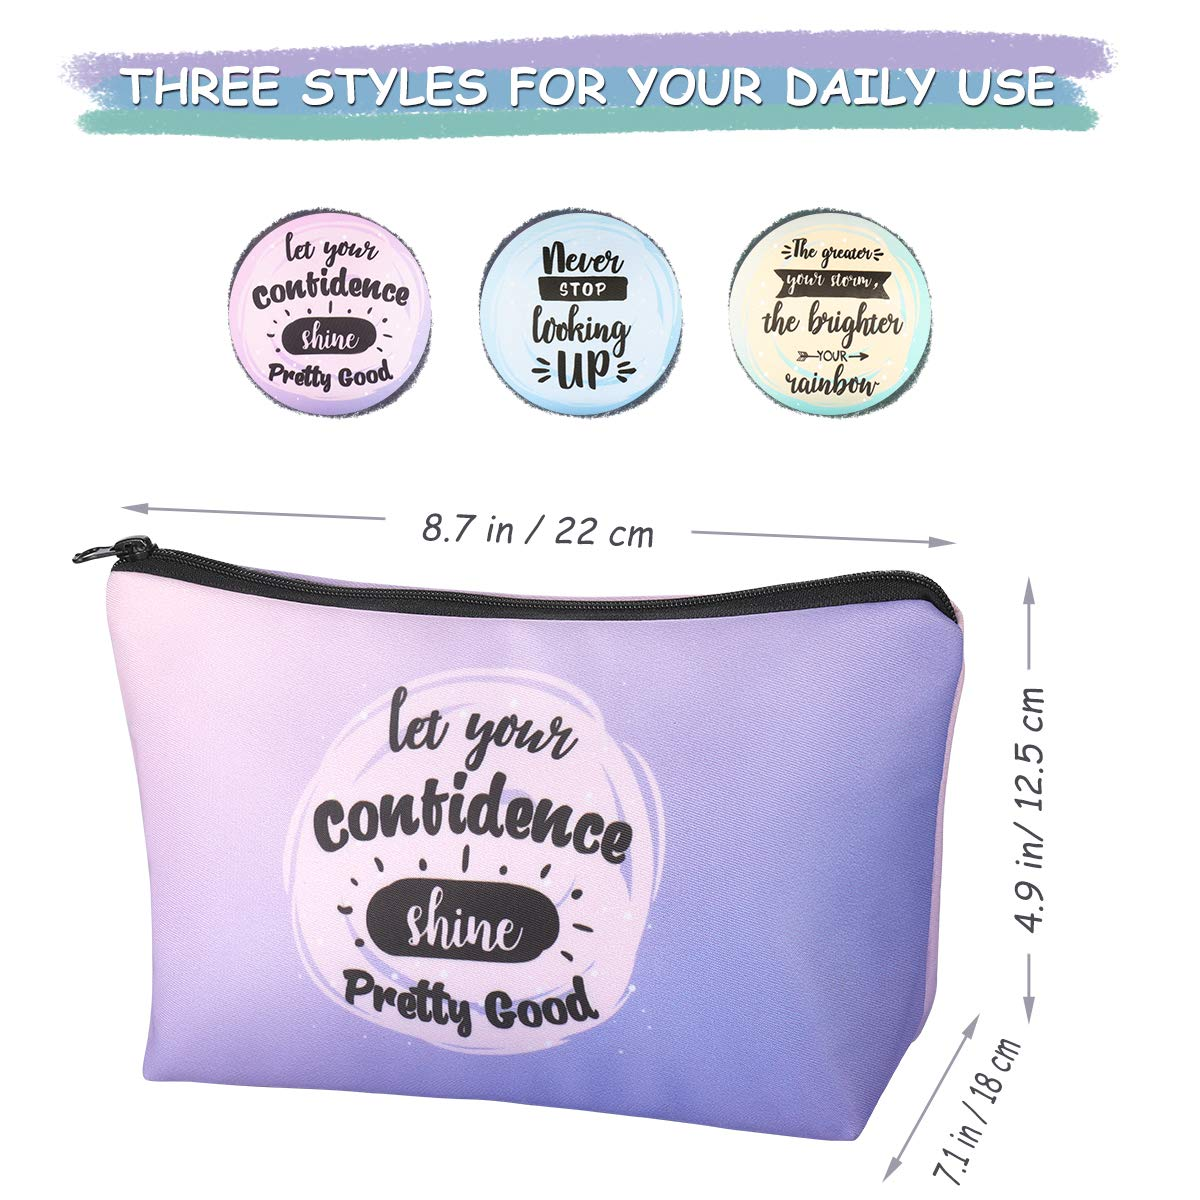 Small Makeup bag for Purse with Proverbs, Cosmetics Bags Waterproof Portable Pencil Bag Case for School Supplies 3pcs